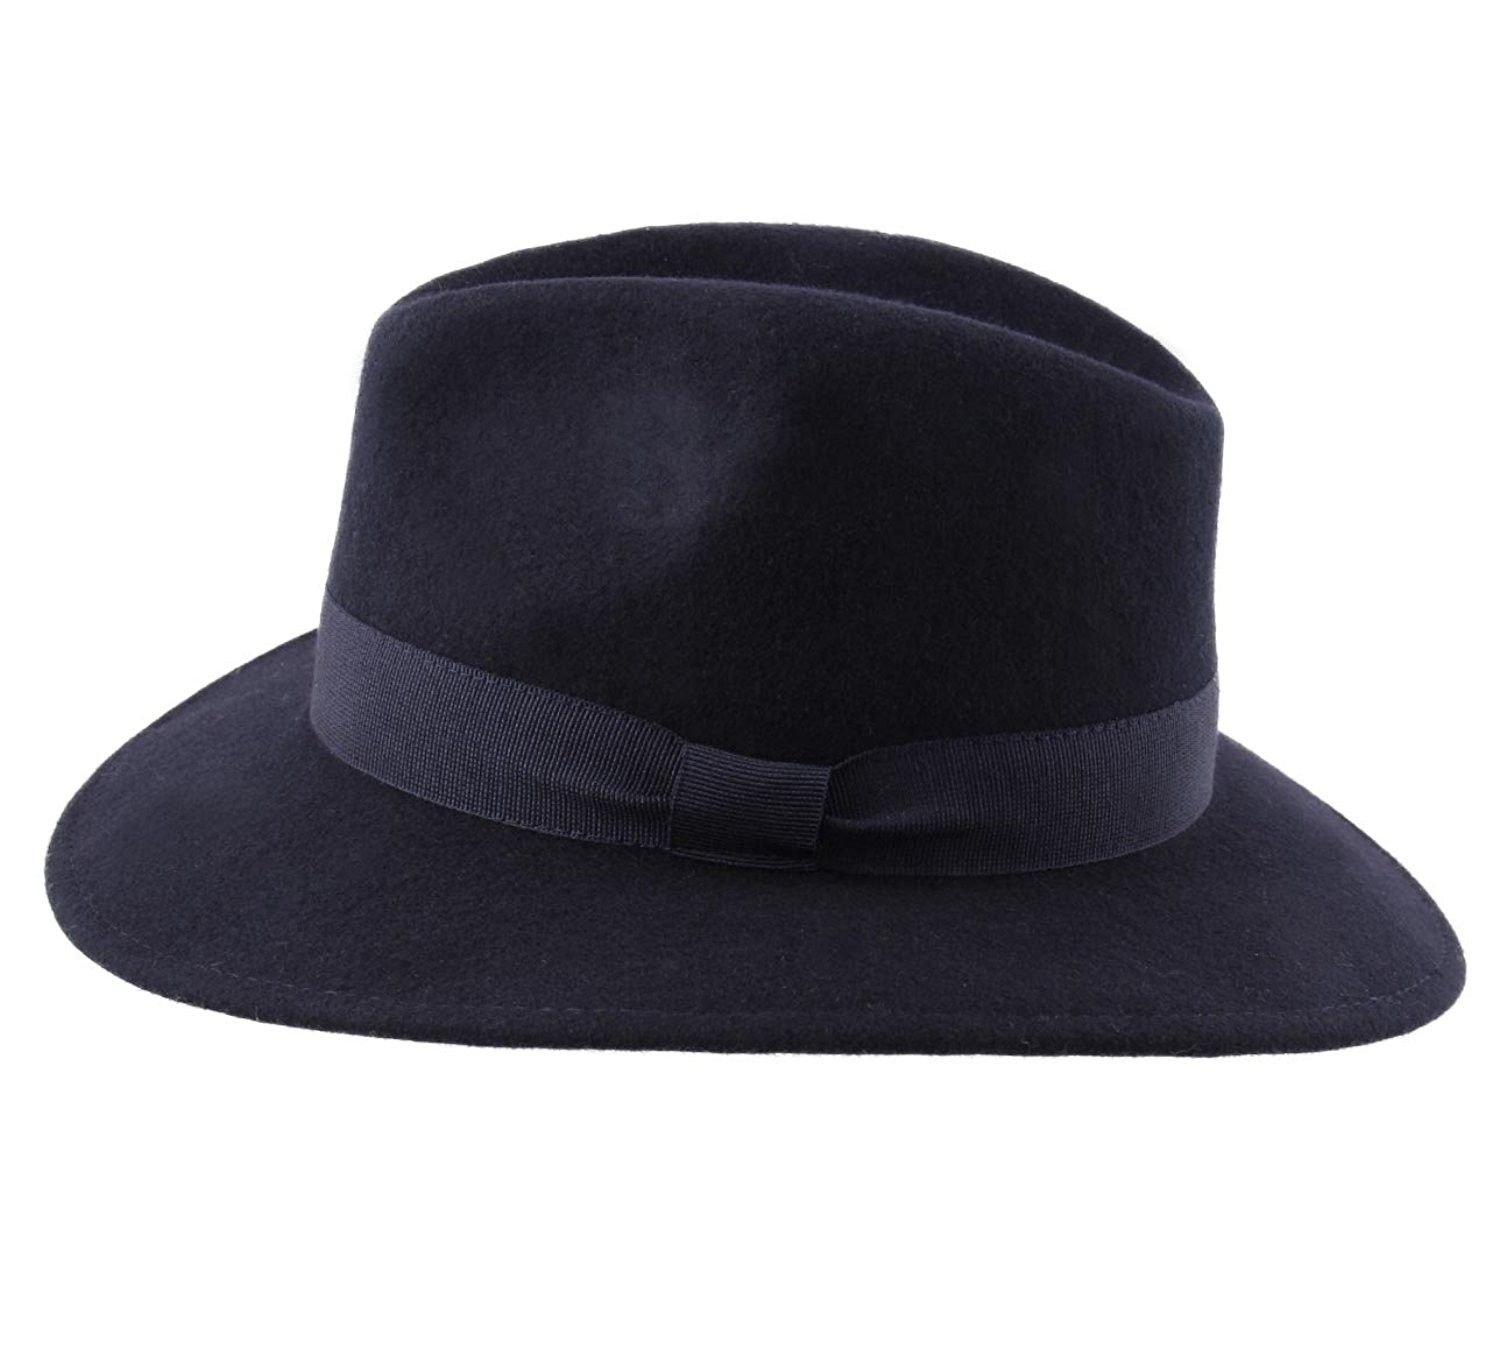 Pin On Fashion Hats Caps For Men